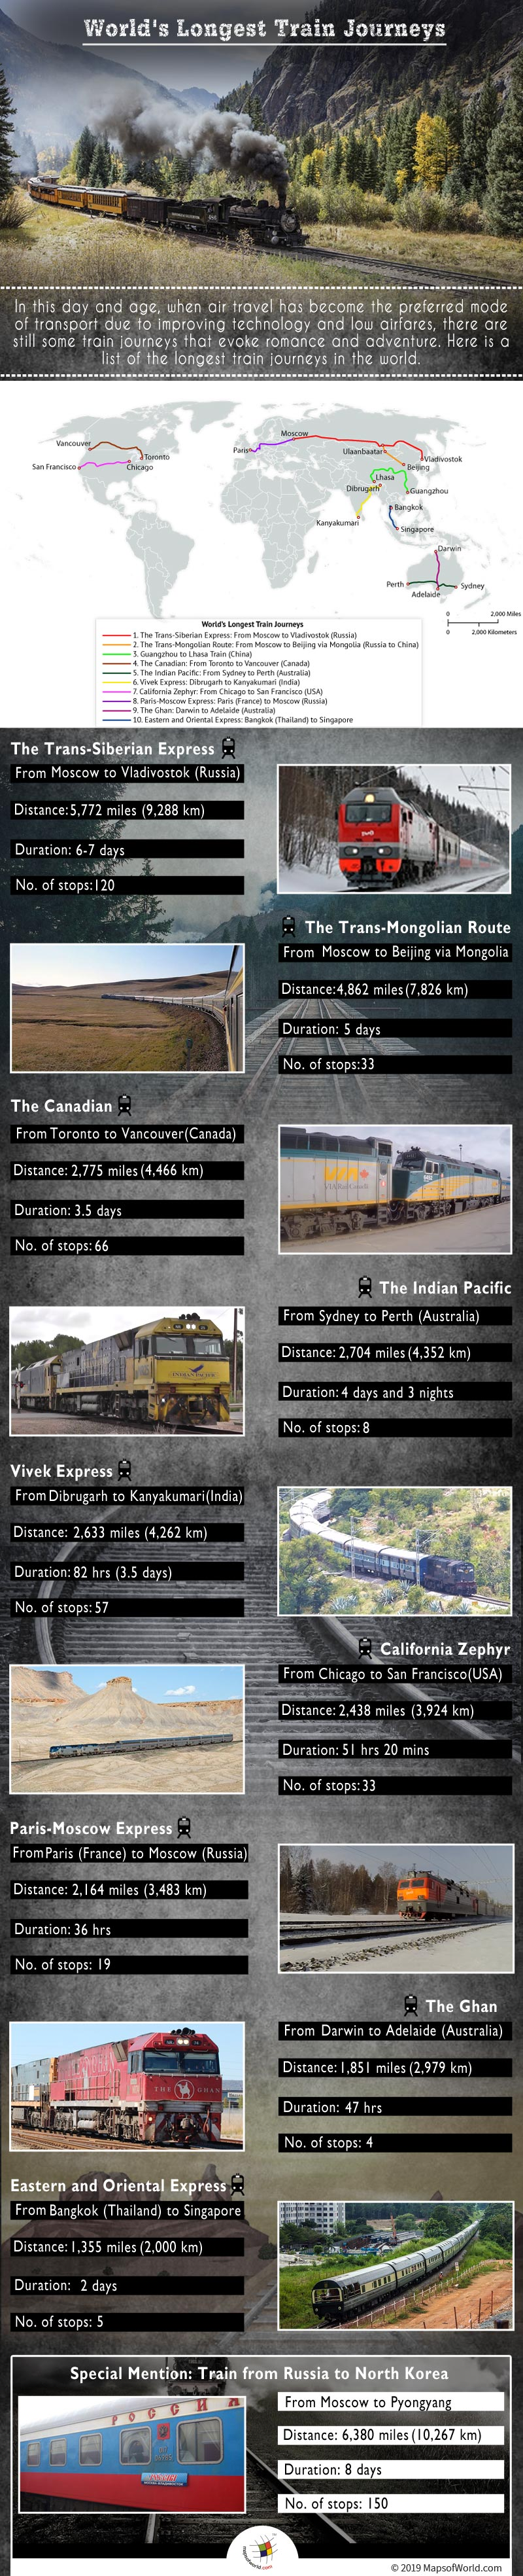 Infographic Giving Details on The World's Longest Train Journeys